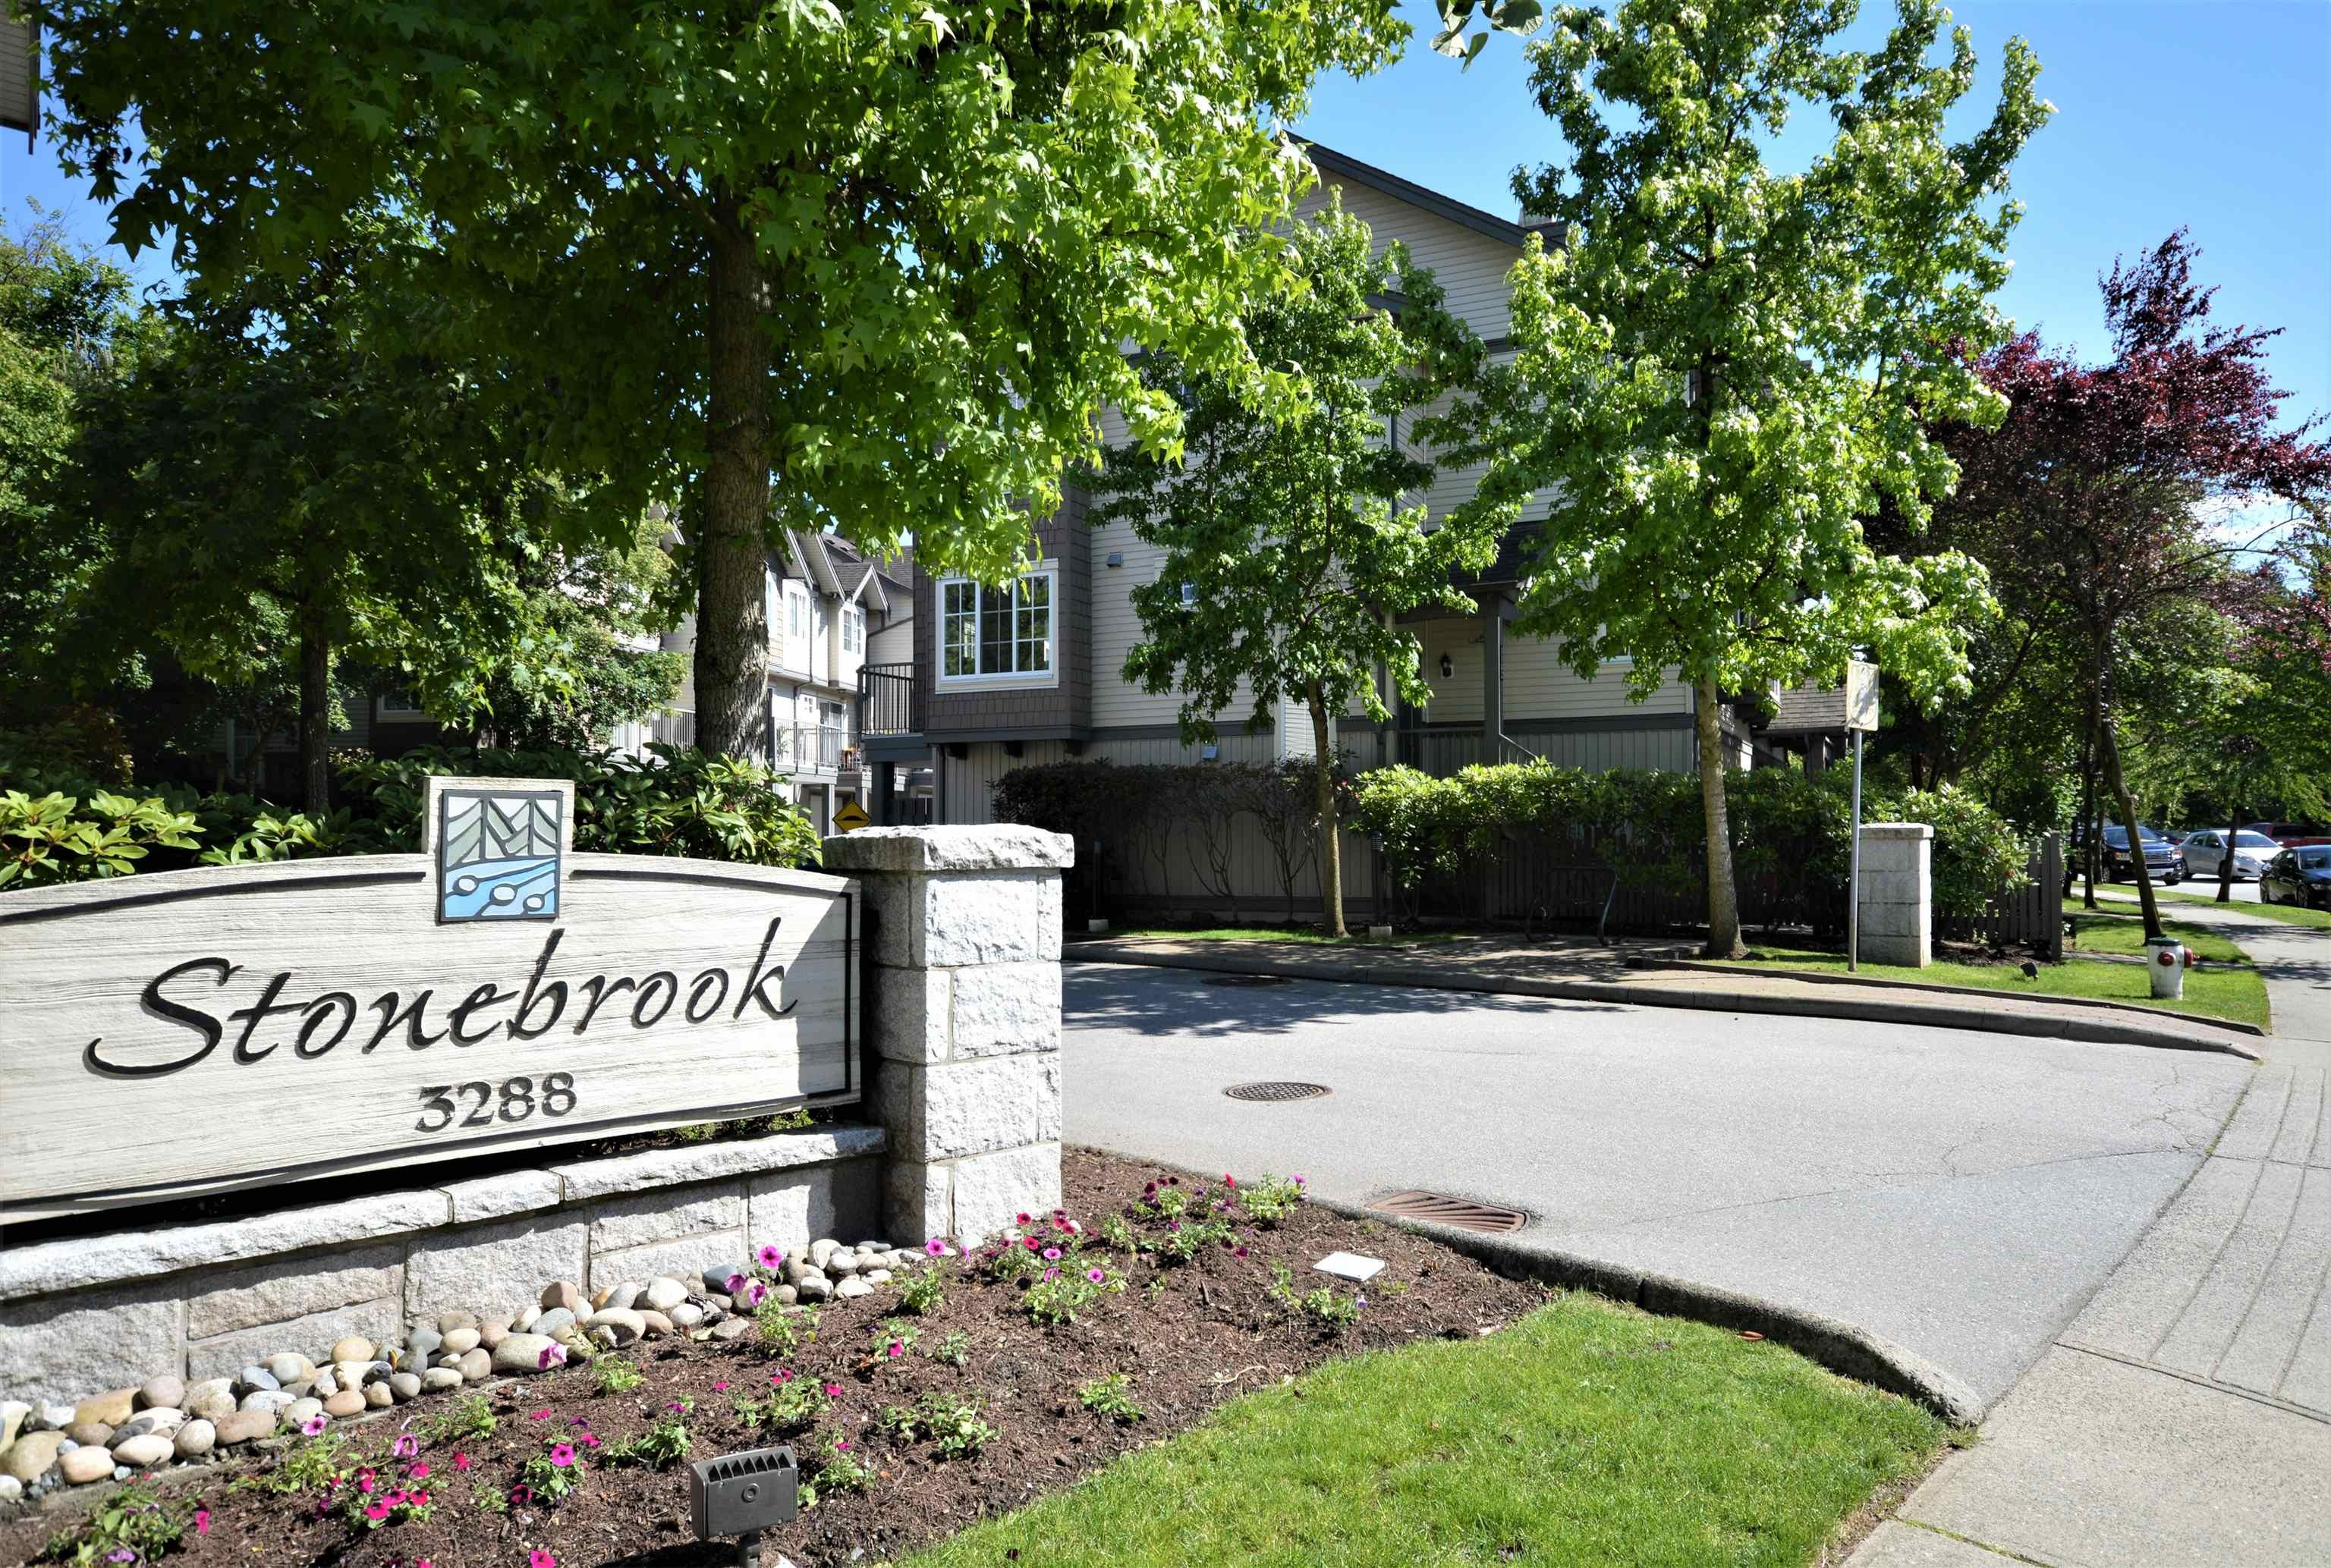 """Main Photo: 3302 NOEL Drive in Burnaby: Sullivan Heights Townhouse for sale in """"Stonebrook"""" (Burnaby North)  : MLS®# R2611173"""